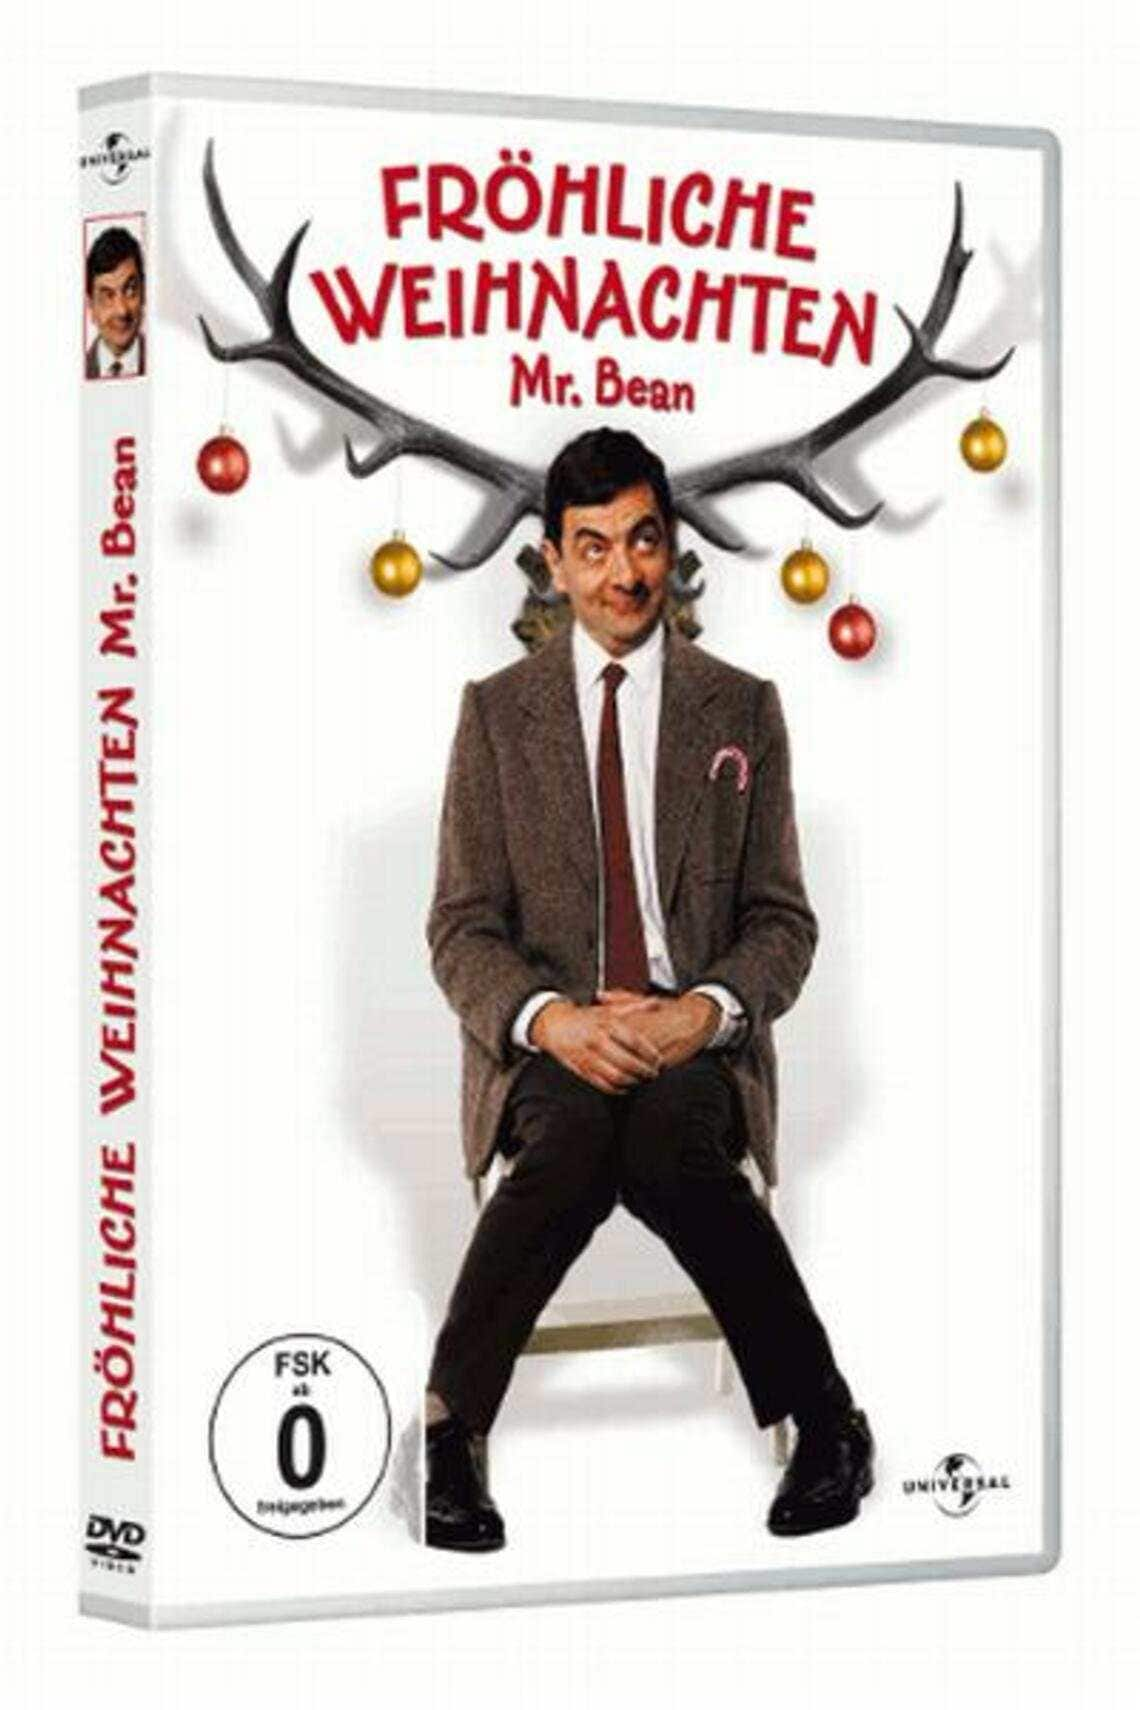 Look-Book Spezial TV Weihnachten Filme Mr. Bean